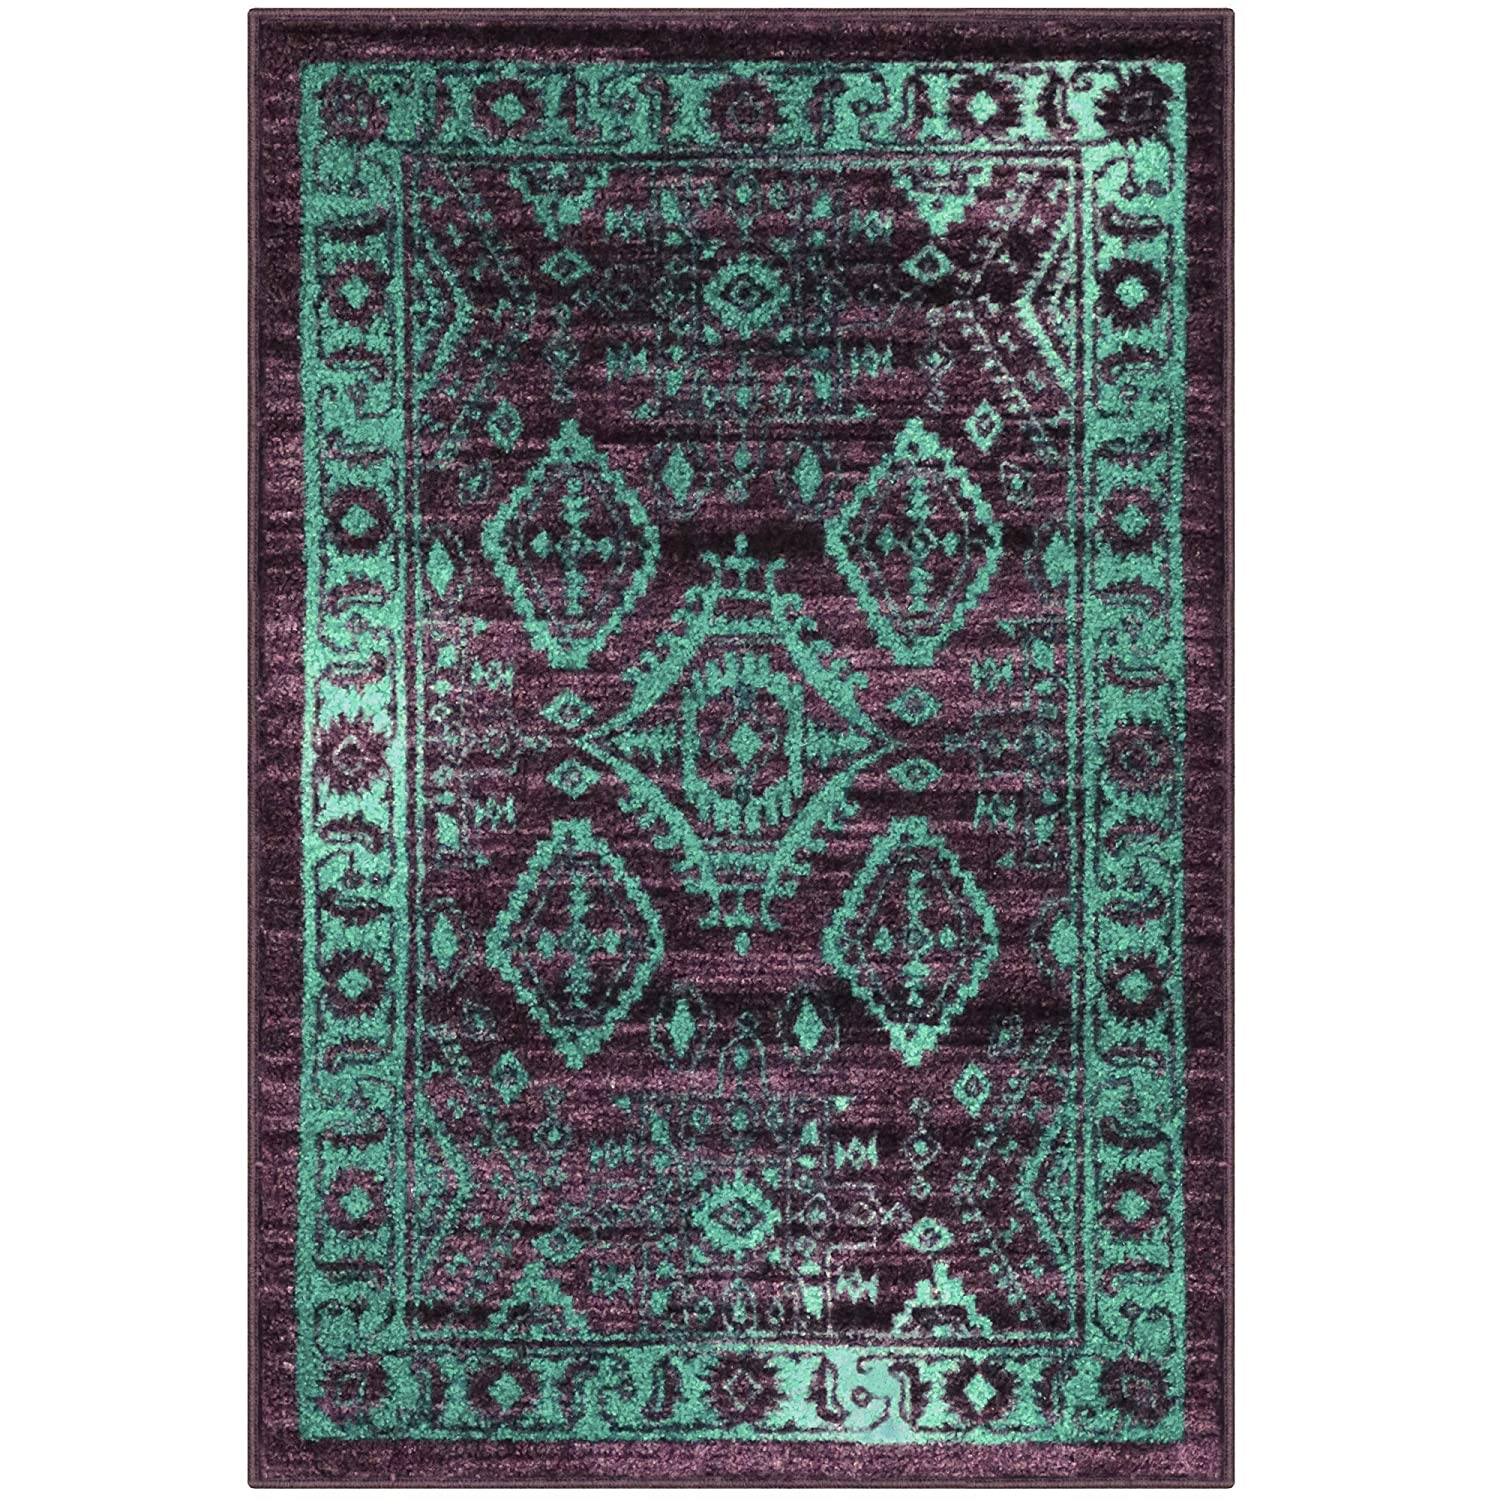 Maples Rugs Kitchen Rug - Georgina 2.5 x 4 Non Skid Small Accent Throw Rugs [Made in USA] for Entryway and Bedroom, 2